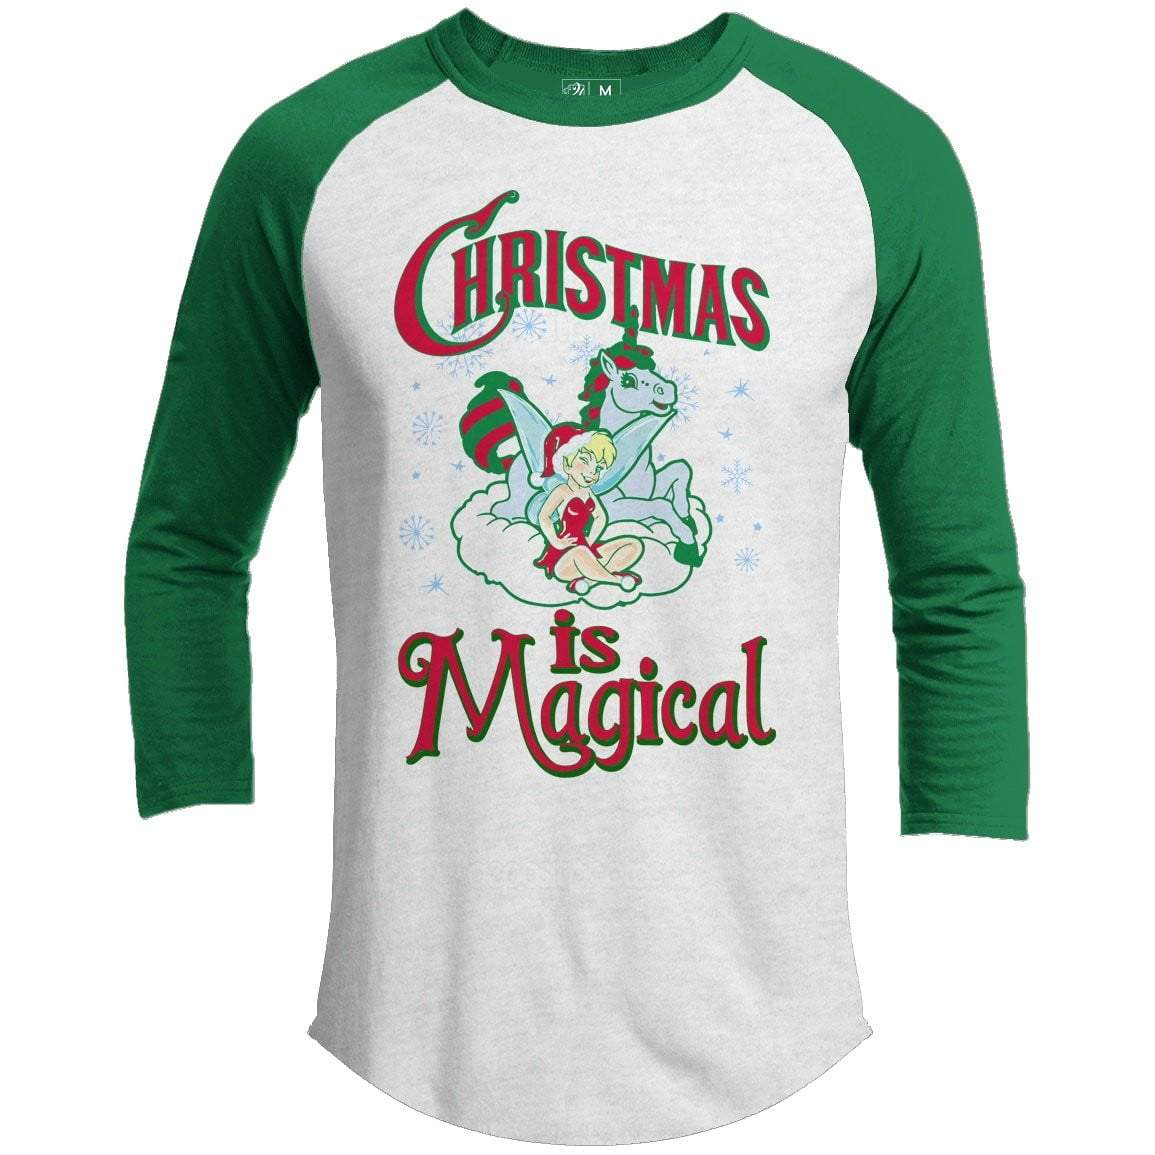 CHRISTMAS IS MAGICAL Premium Youth Christmas Raglan